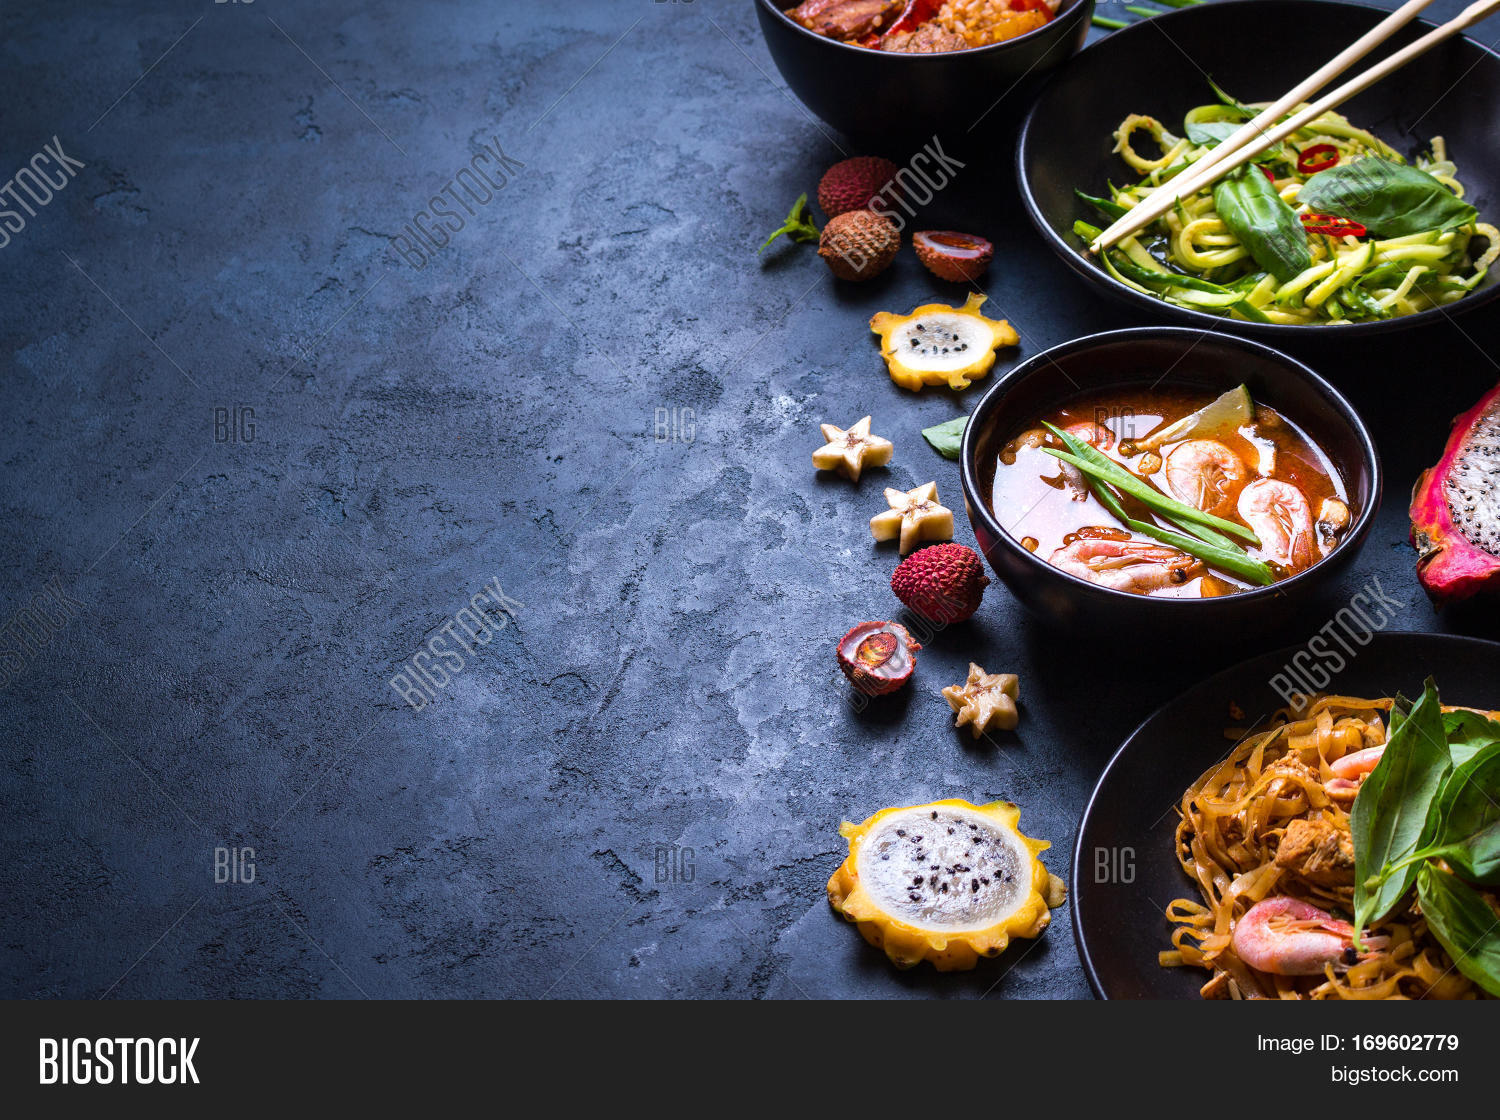 Thai food background image photo bigstock for Asian cuisine indian and thai food page